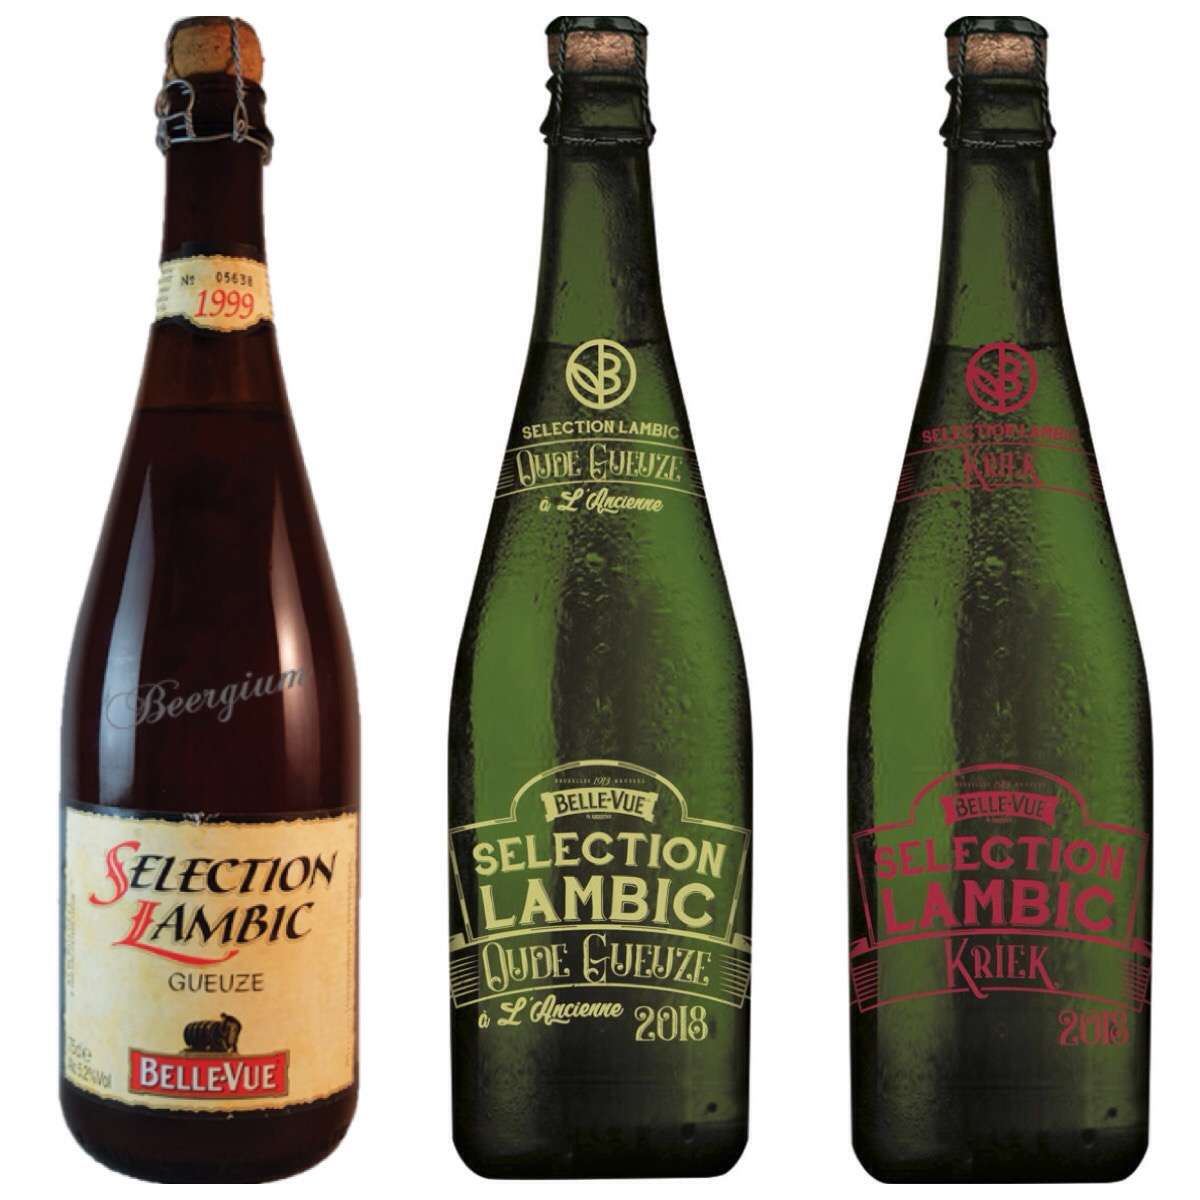 Plommon i gueuze